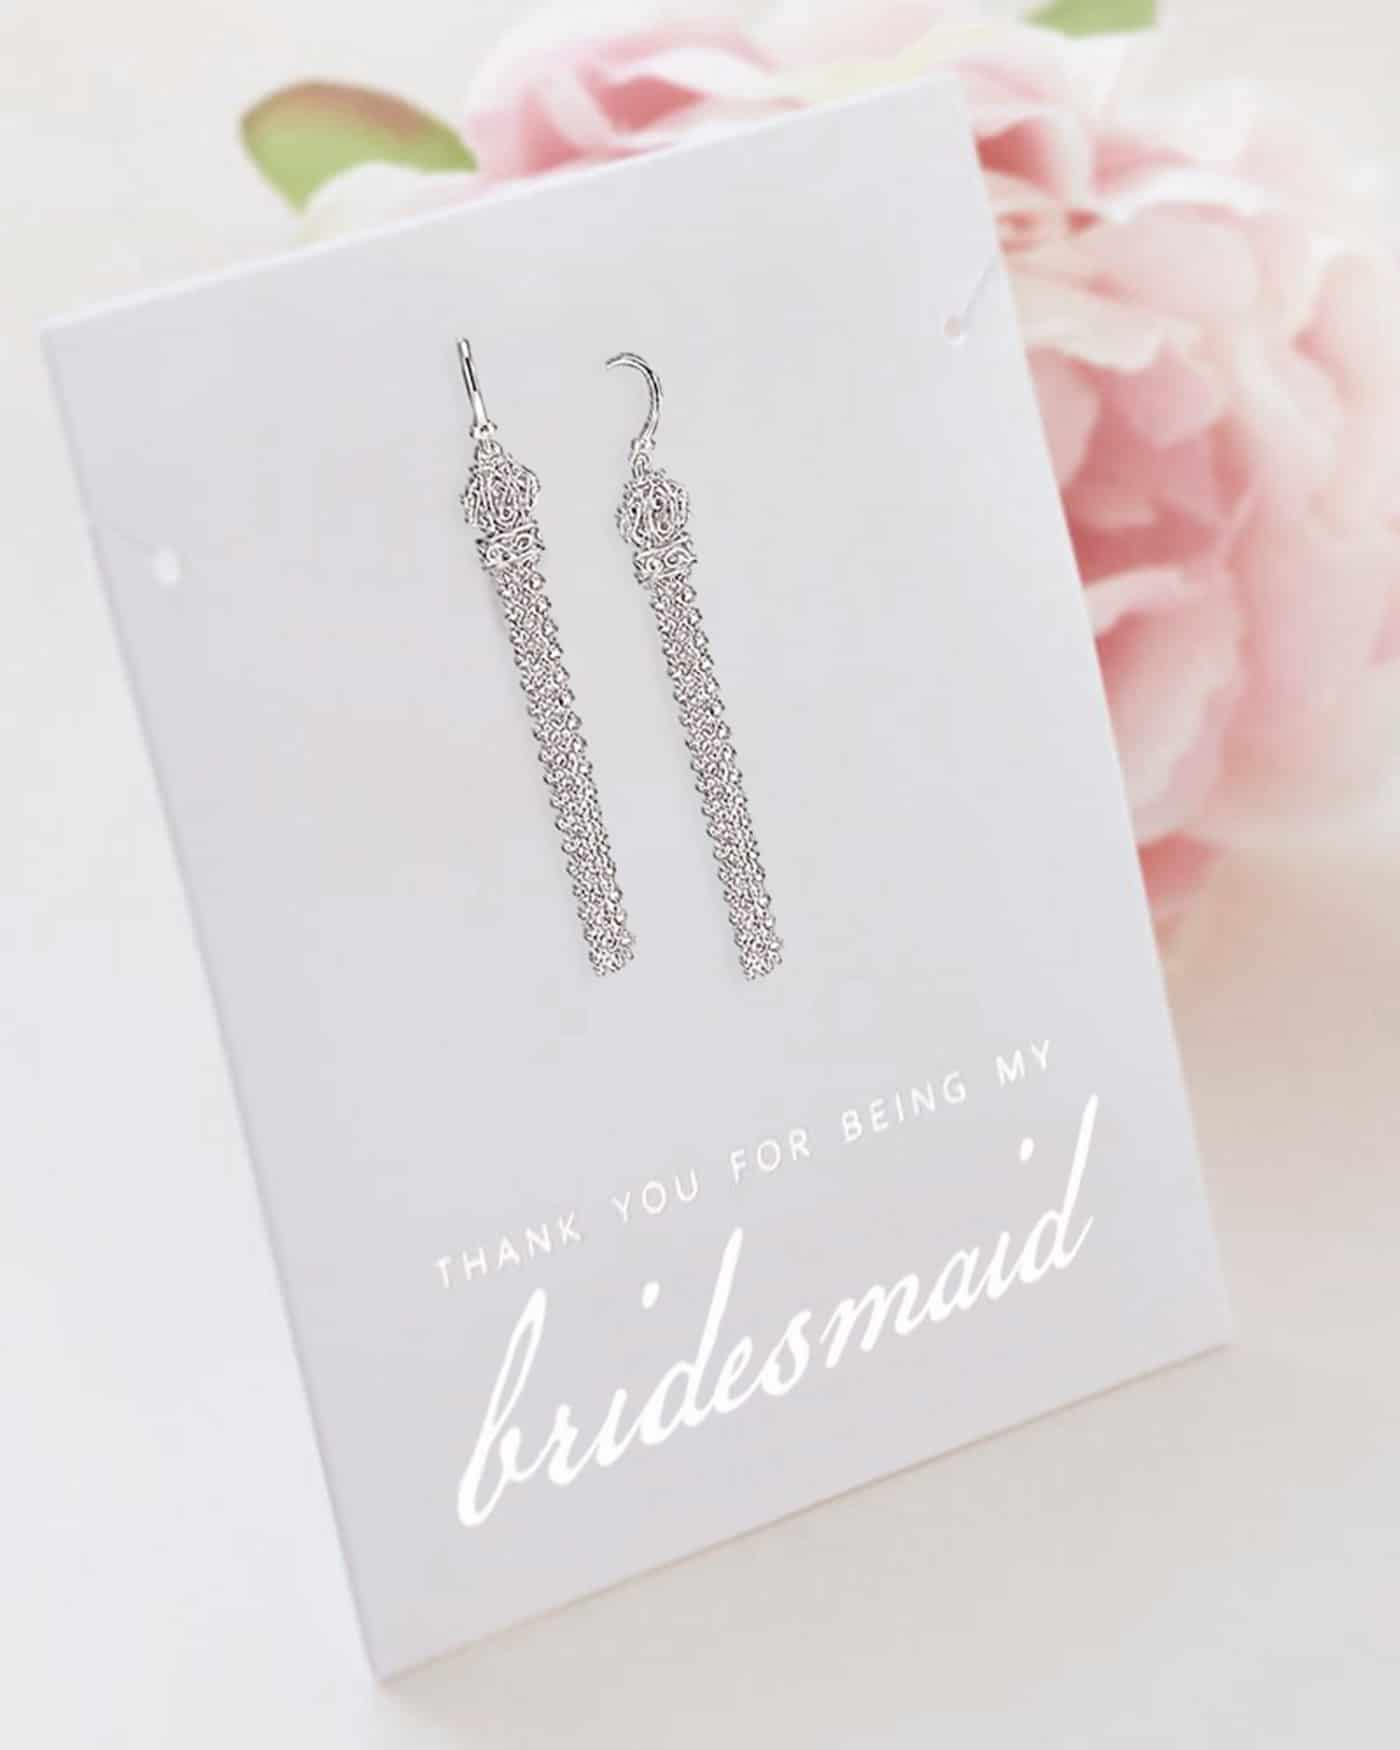 Personalized Bridal Jewelry Gift Sets - Long Island, NY